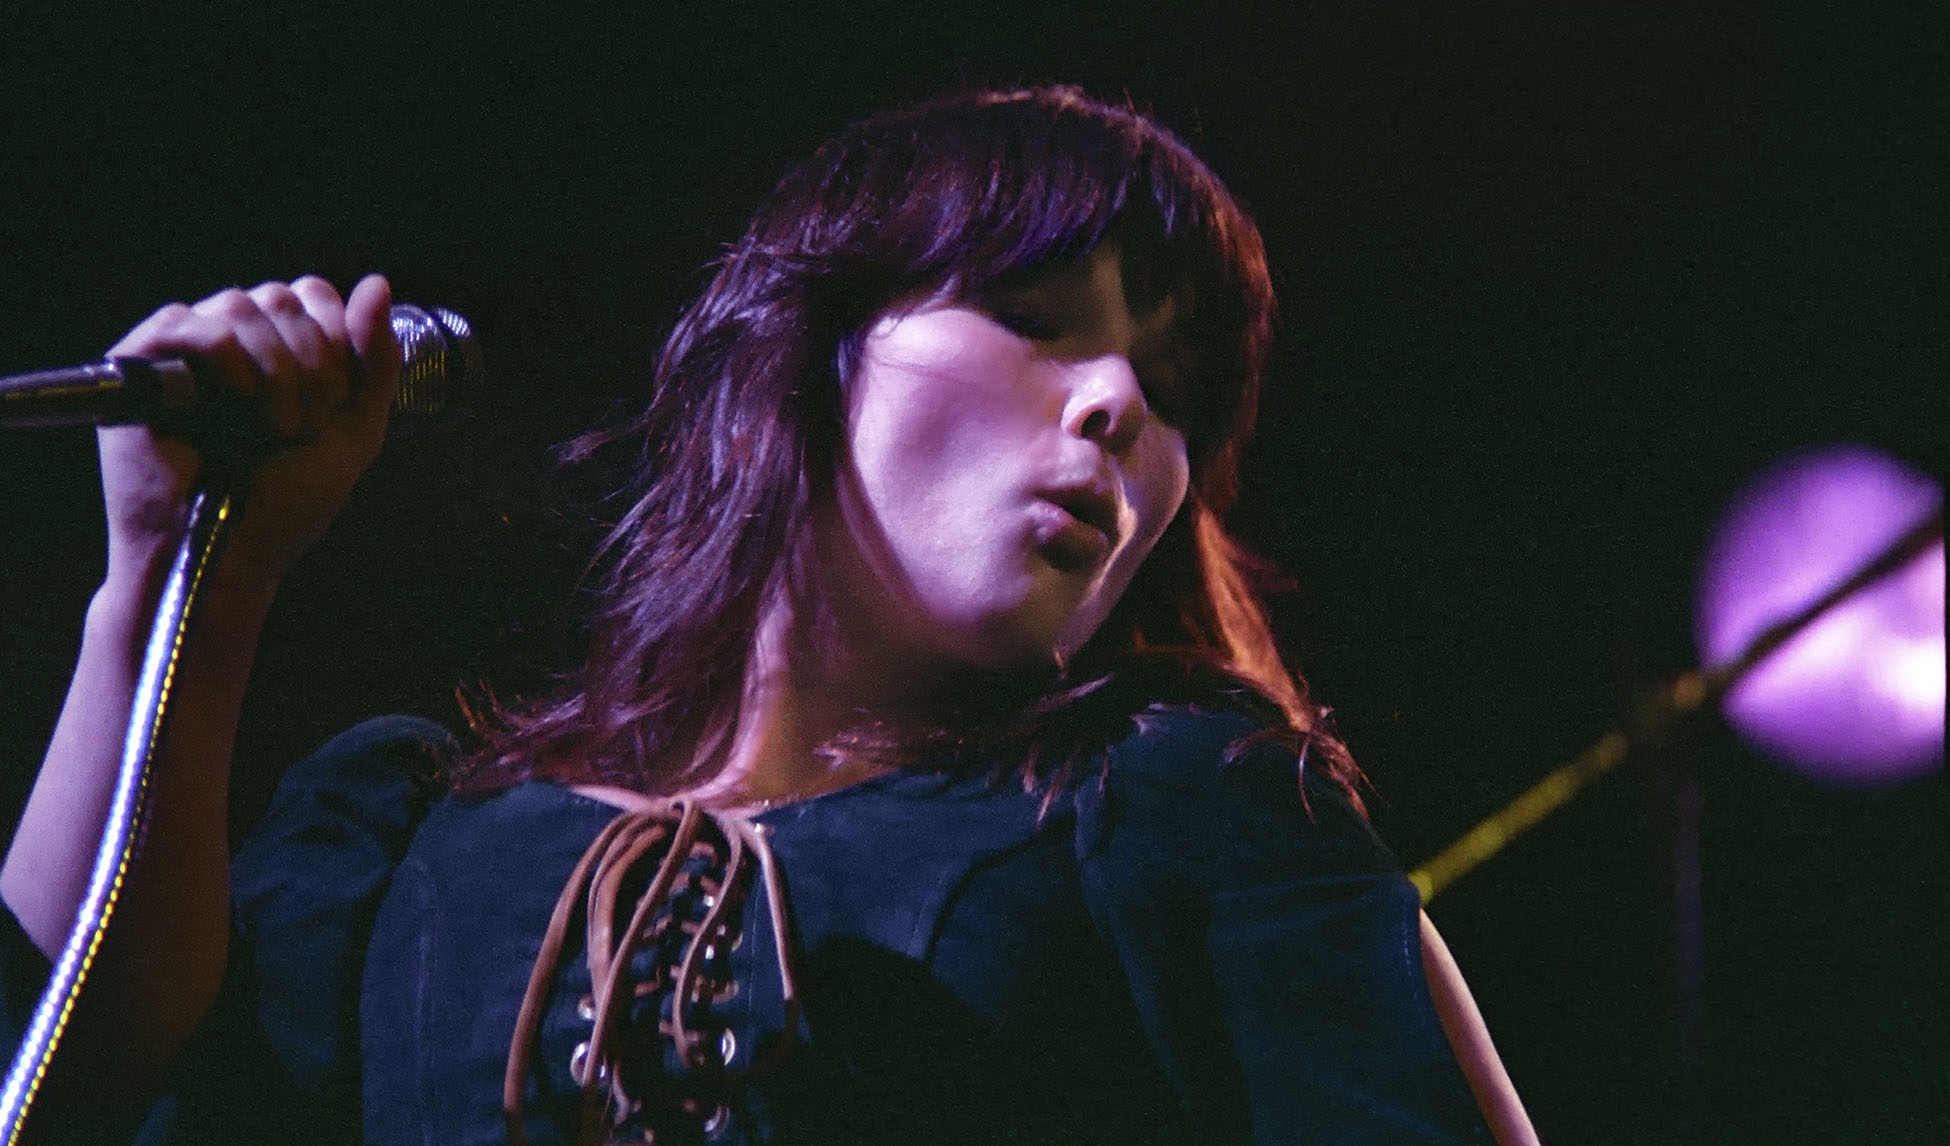 An Interview with Rock and Roll Hall of Famer Ann Wilson of Heart